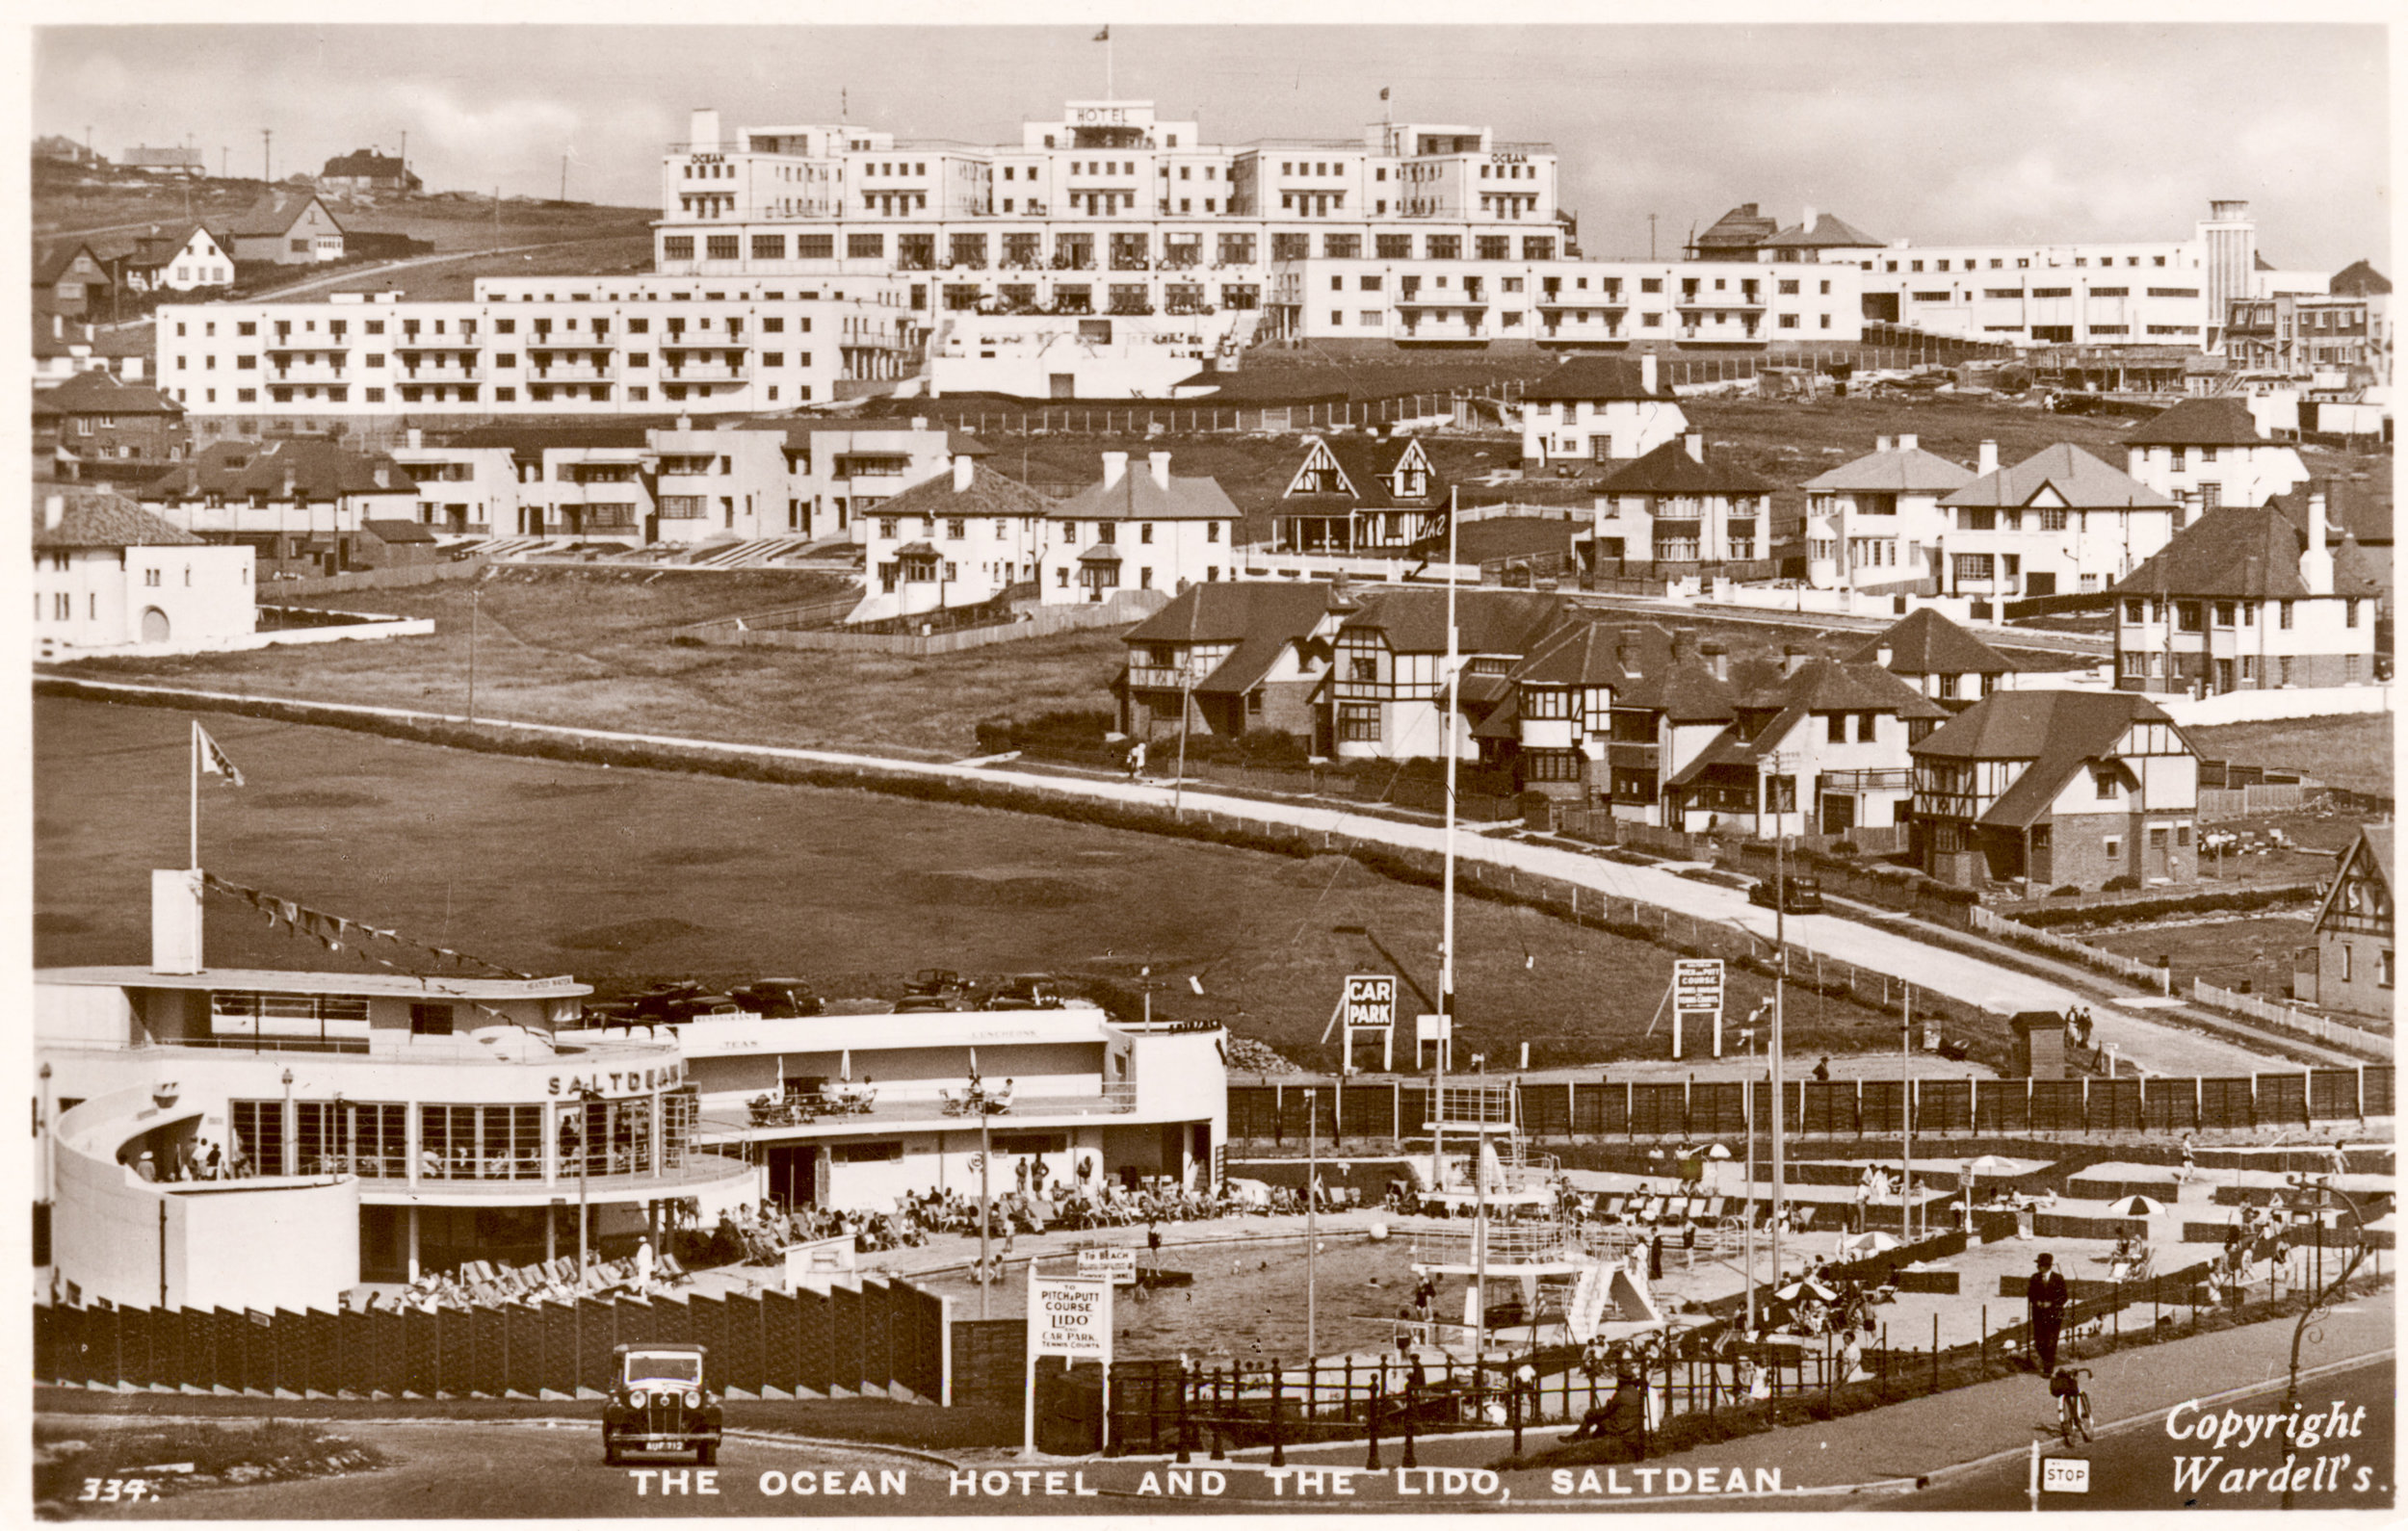 Circa 1940, depicting the sister attractions, The Ocean Hotel and Saltdean Lido. Both buildings opened in 1938, and are considered to be two of the finest examples of modernist architecture in the UK.